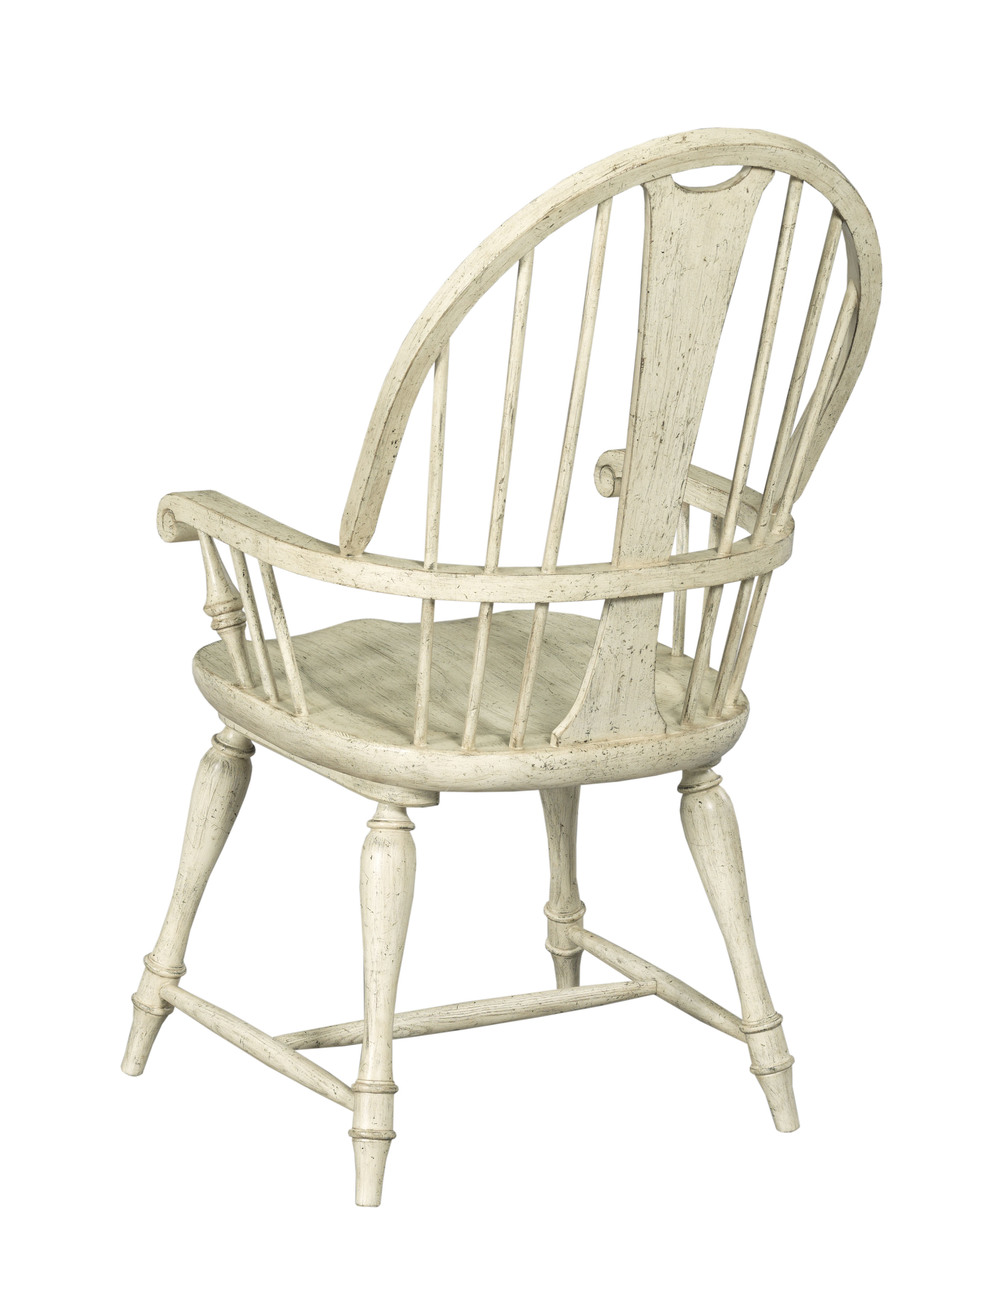 KINCAID FURNITURE CO, INC - Baylis Arm Chair